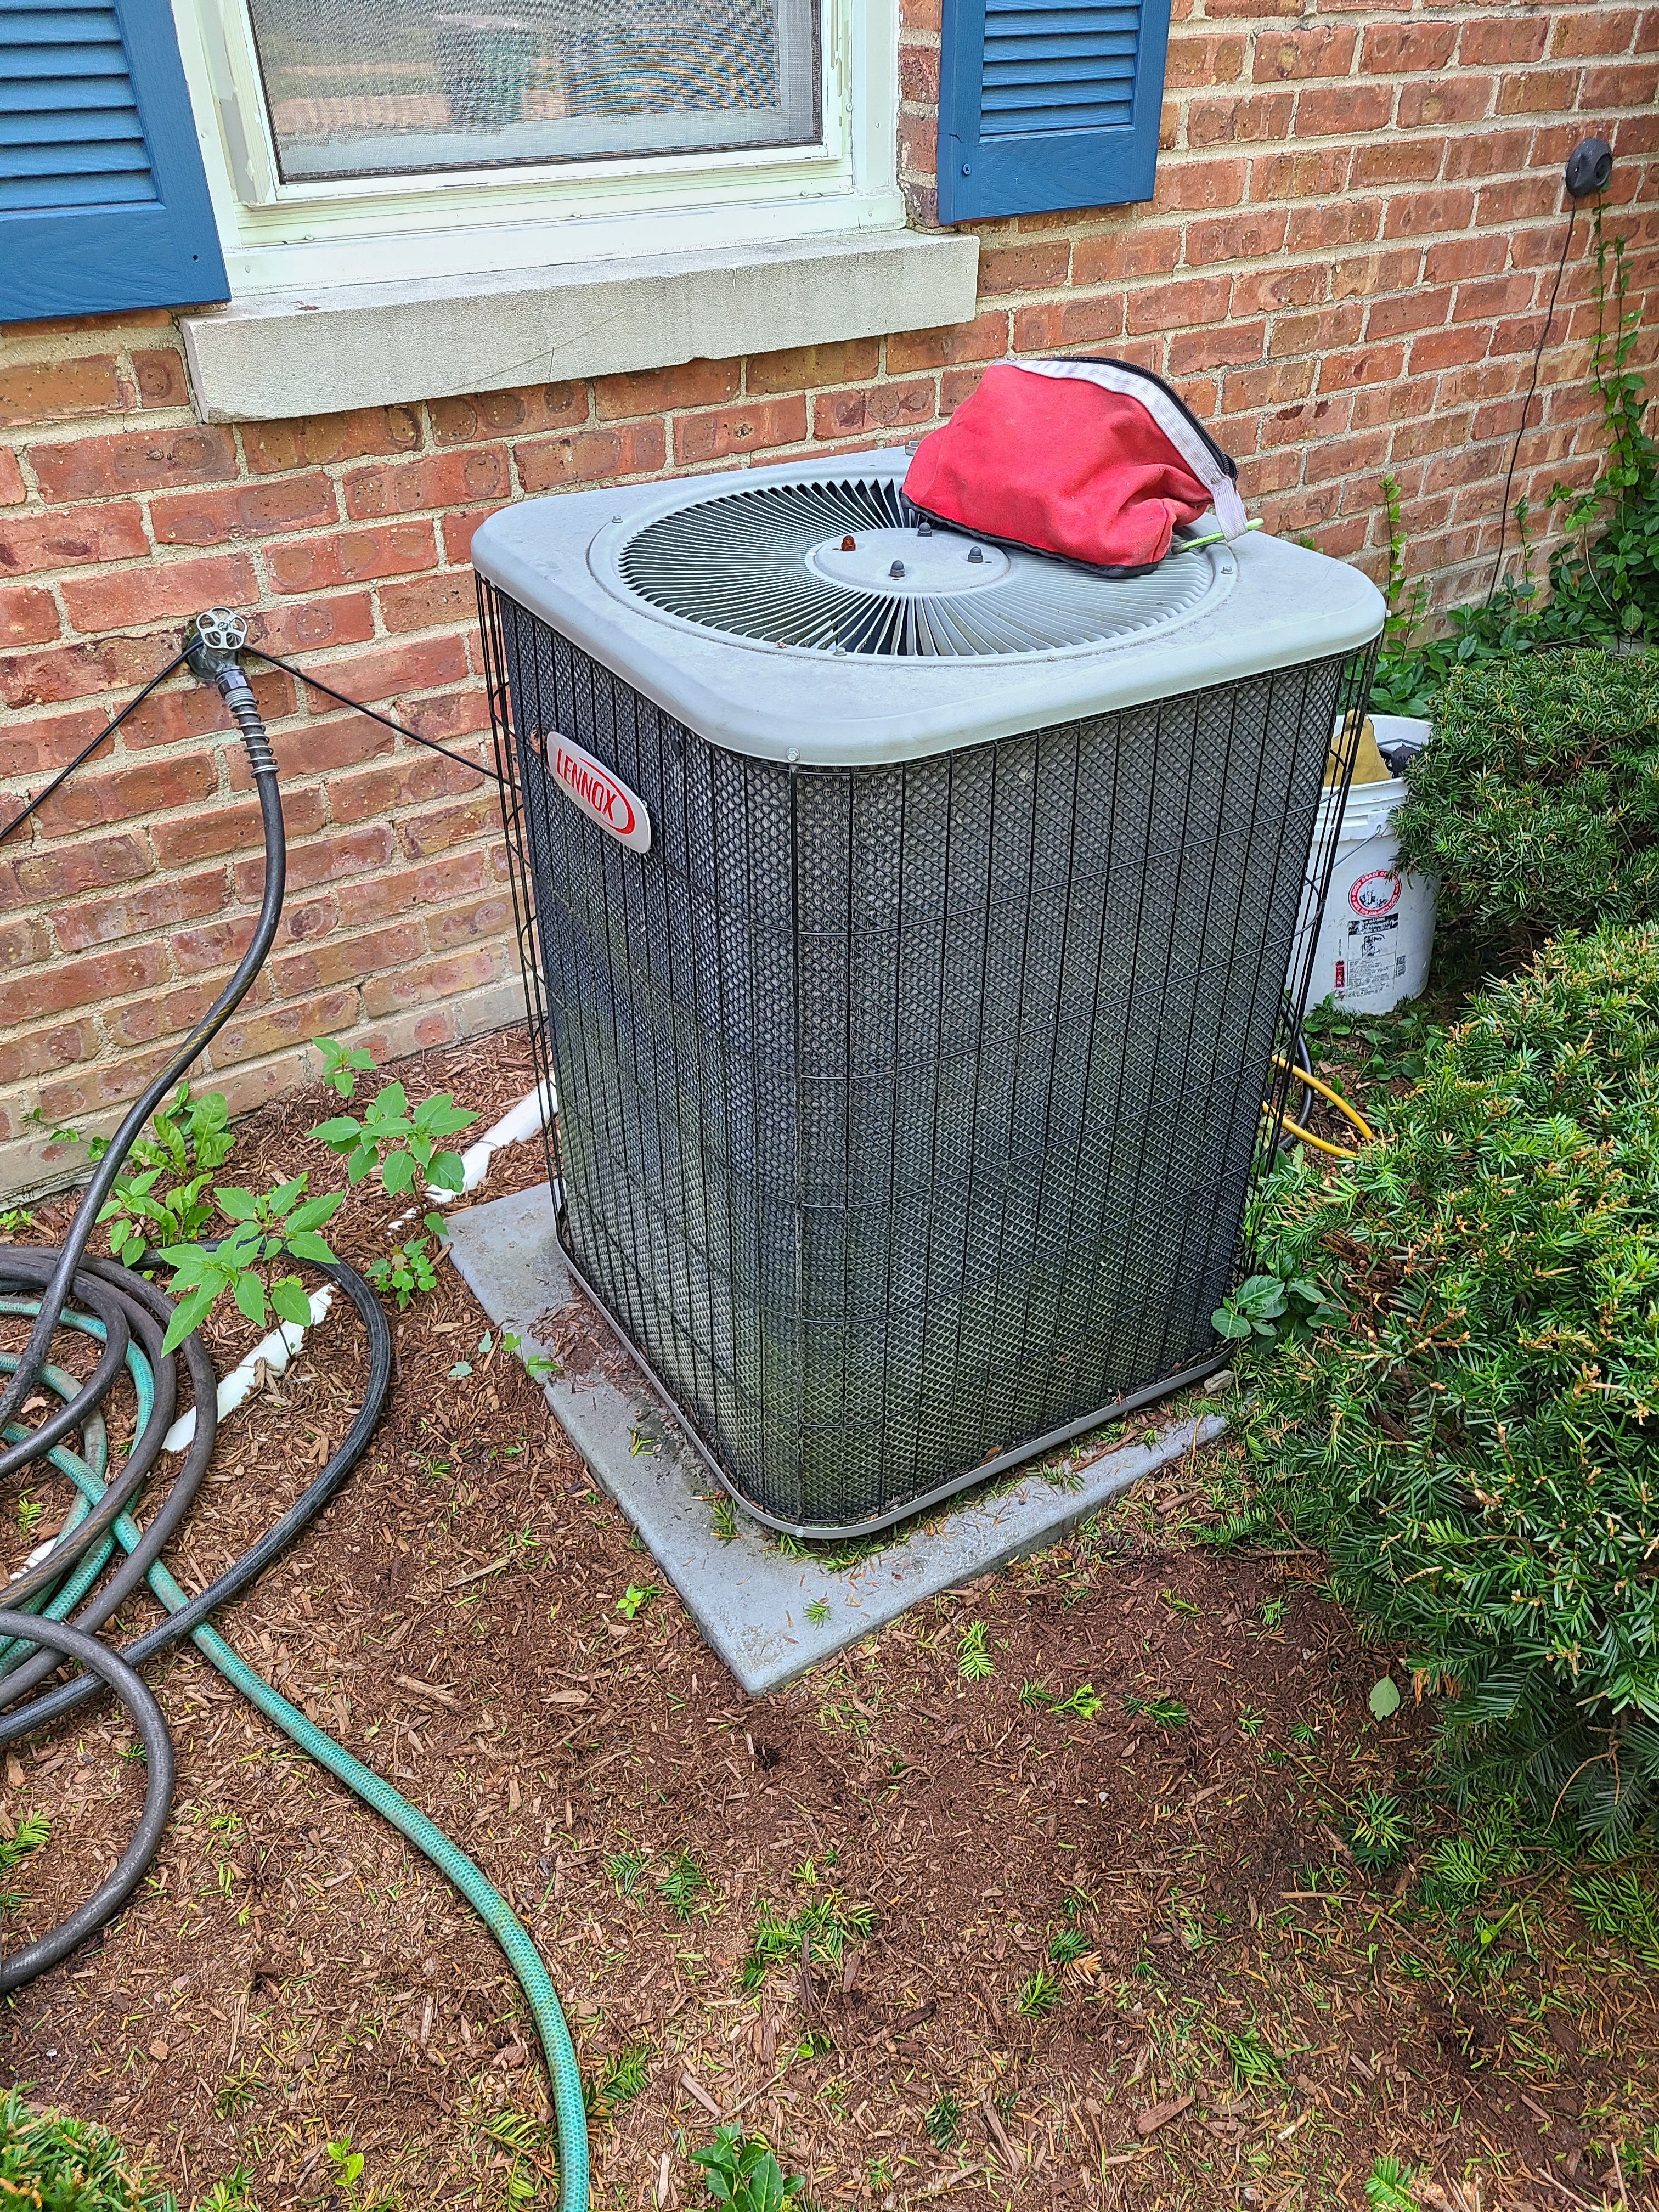 Performed routine maintenance on ac system checked volts amps pressures and Temps system working at this time.  Hvac lennox